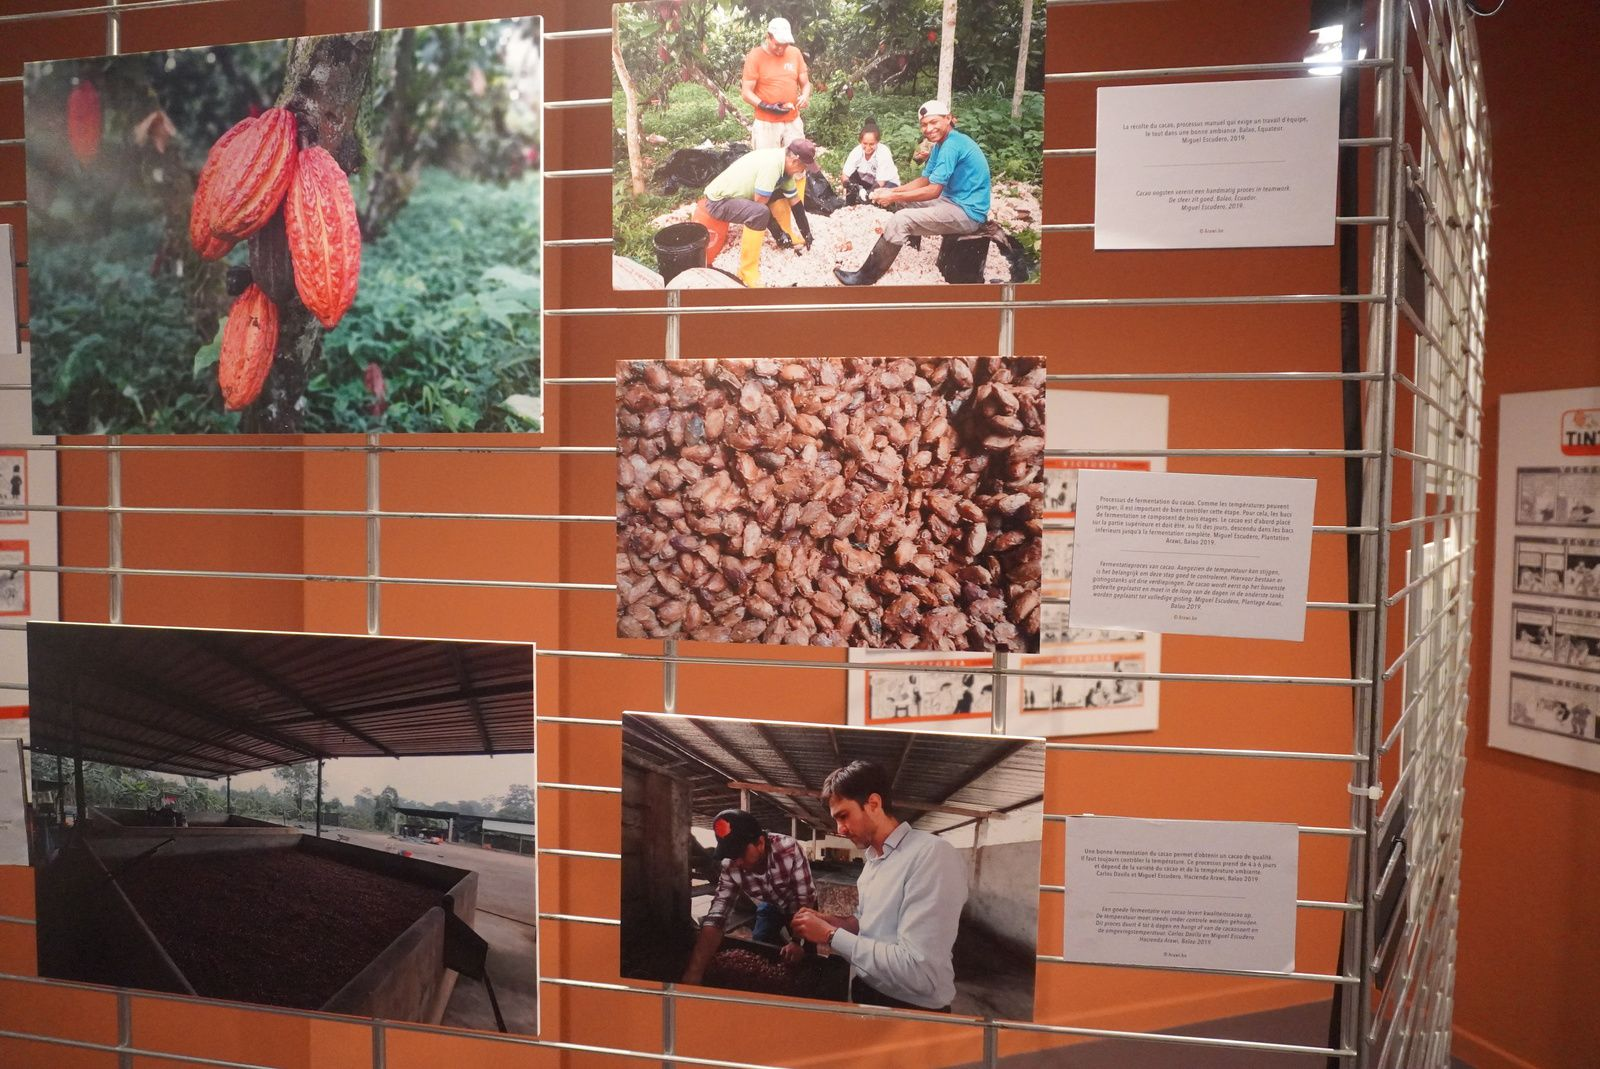 Photo de l'exposition de la découverte du cacao Copyright Hafidabenyacoub